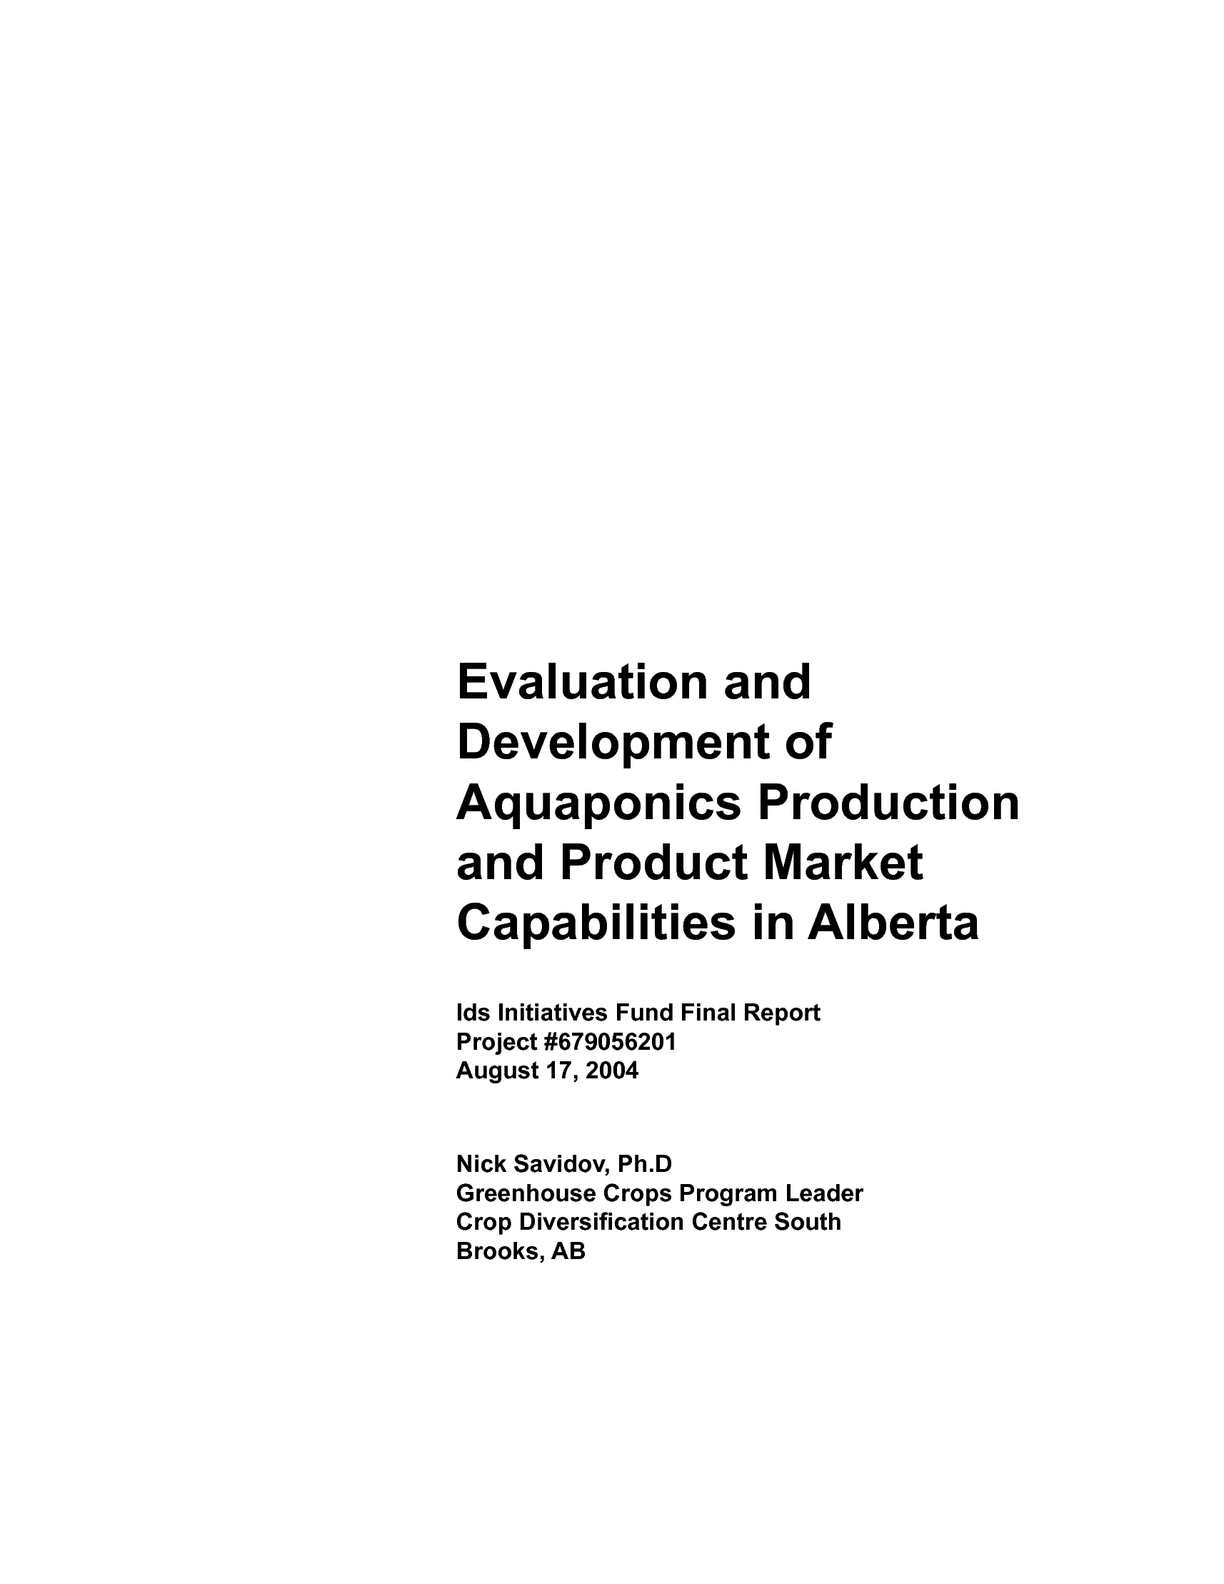 Bl system how many fish in a 55 aquaponics tank info - Calam O Evaluation And Development Of Aquaponics Production And Product Market In Alberta